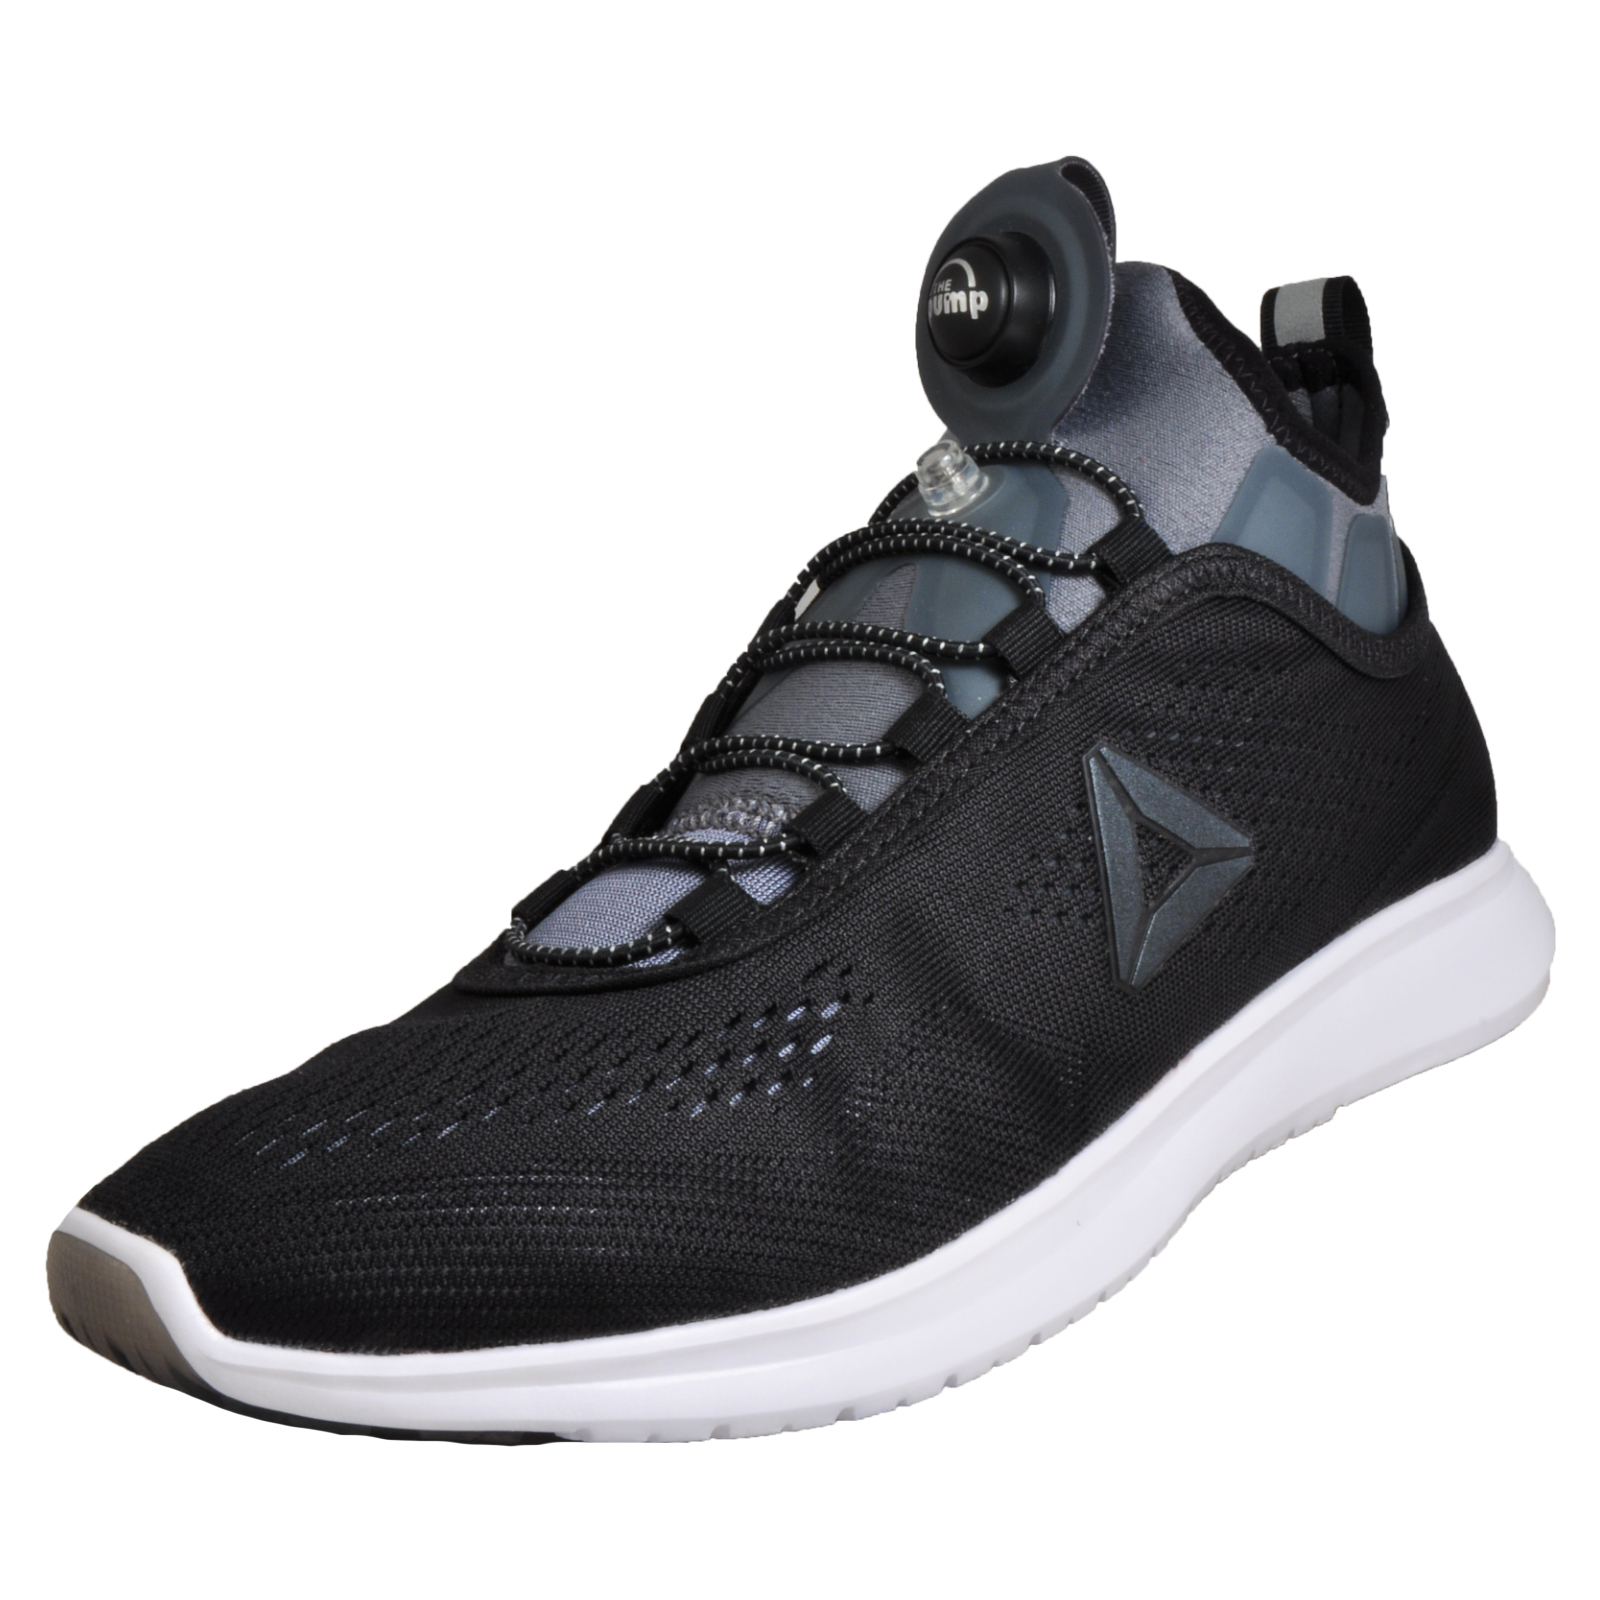 3ade8121578 Reebok Pump Plus Tech Women s Running Shoes CrossFit Gym Workout Trainers  Black